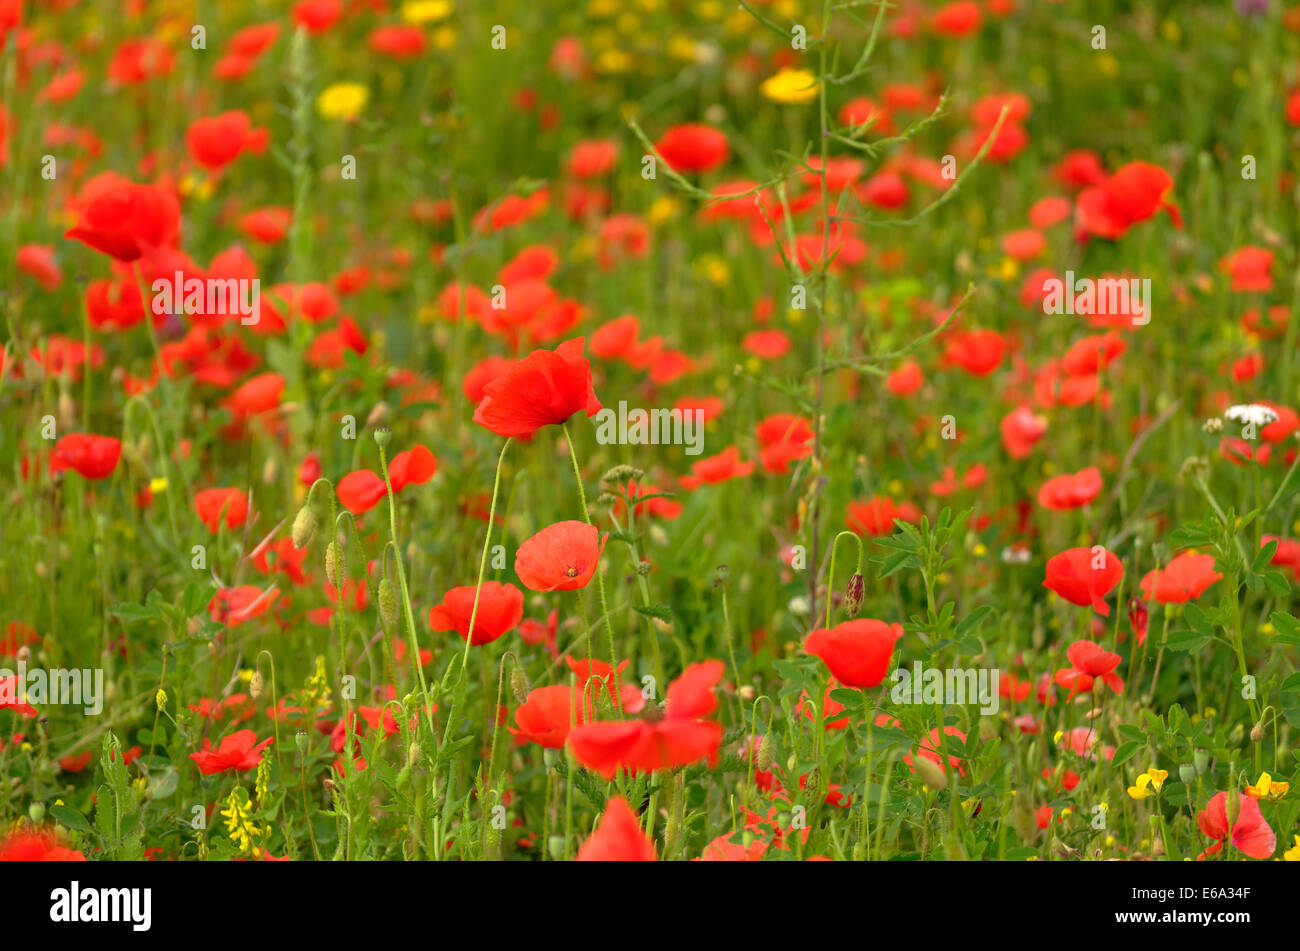 Meadow flowers, Poppies & Buttercups - Stock Image